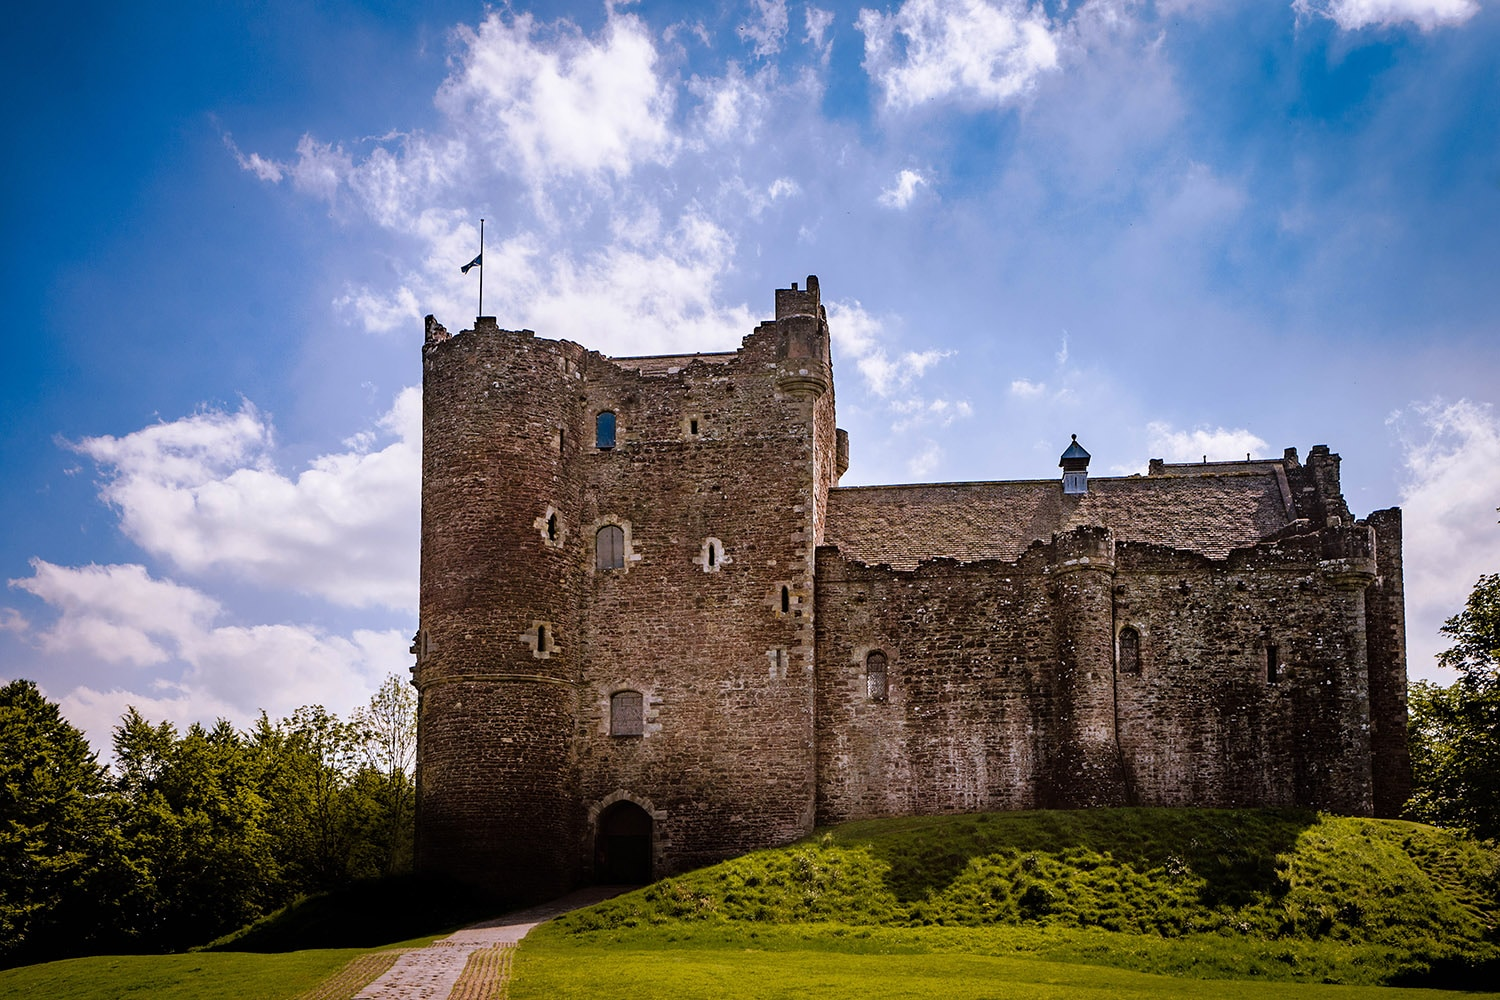 Doune Castle in Stirlingshire is featured in our Outlander tour of Scotland